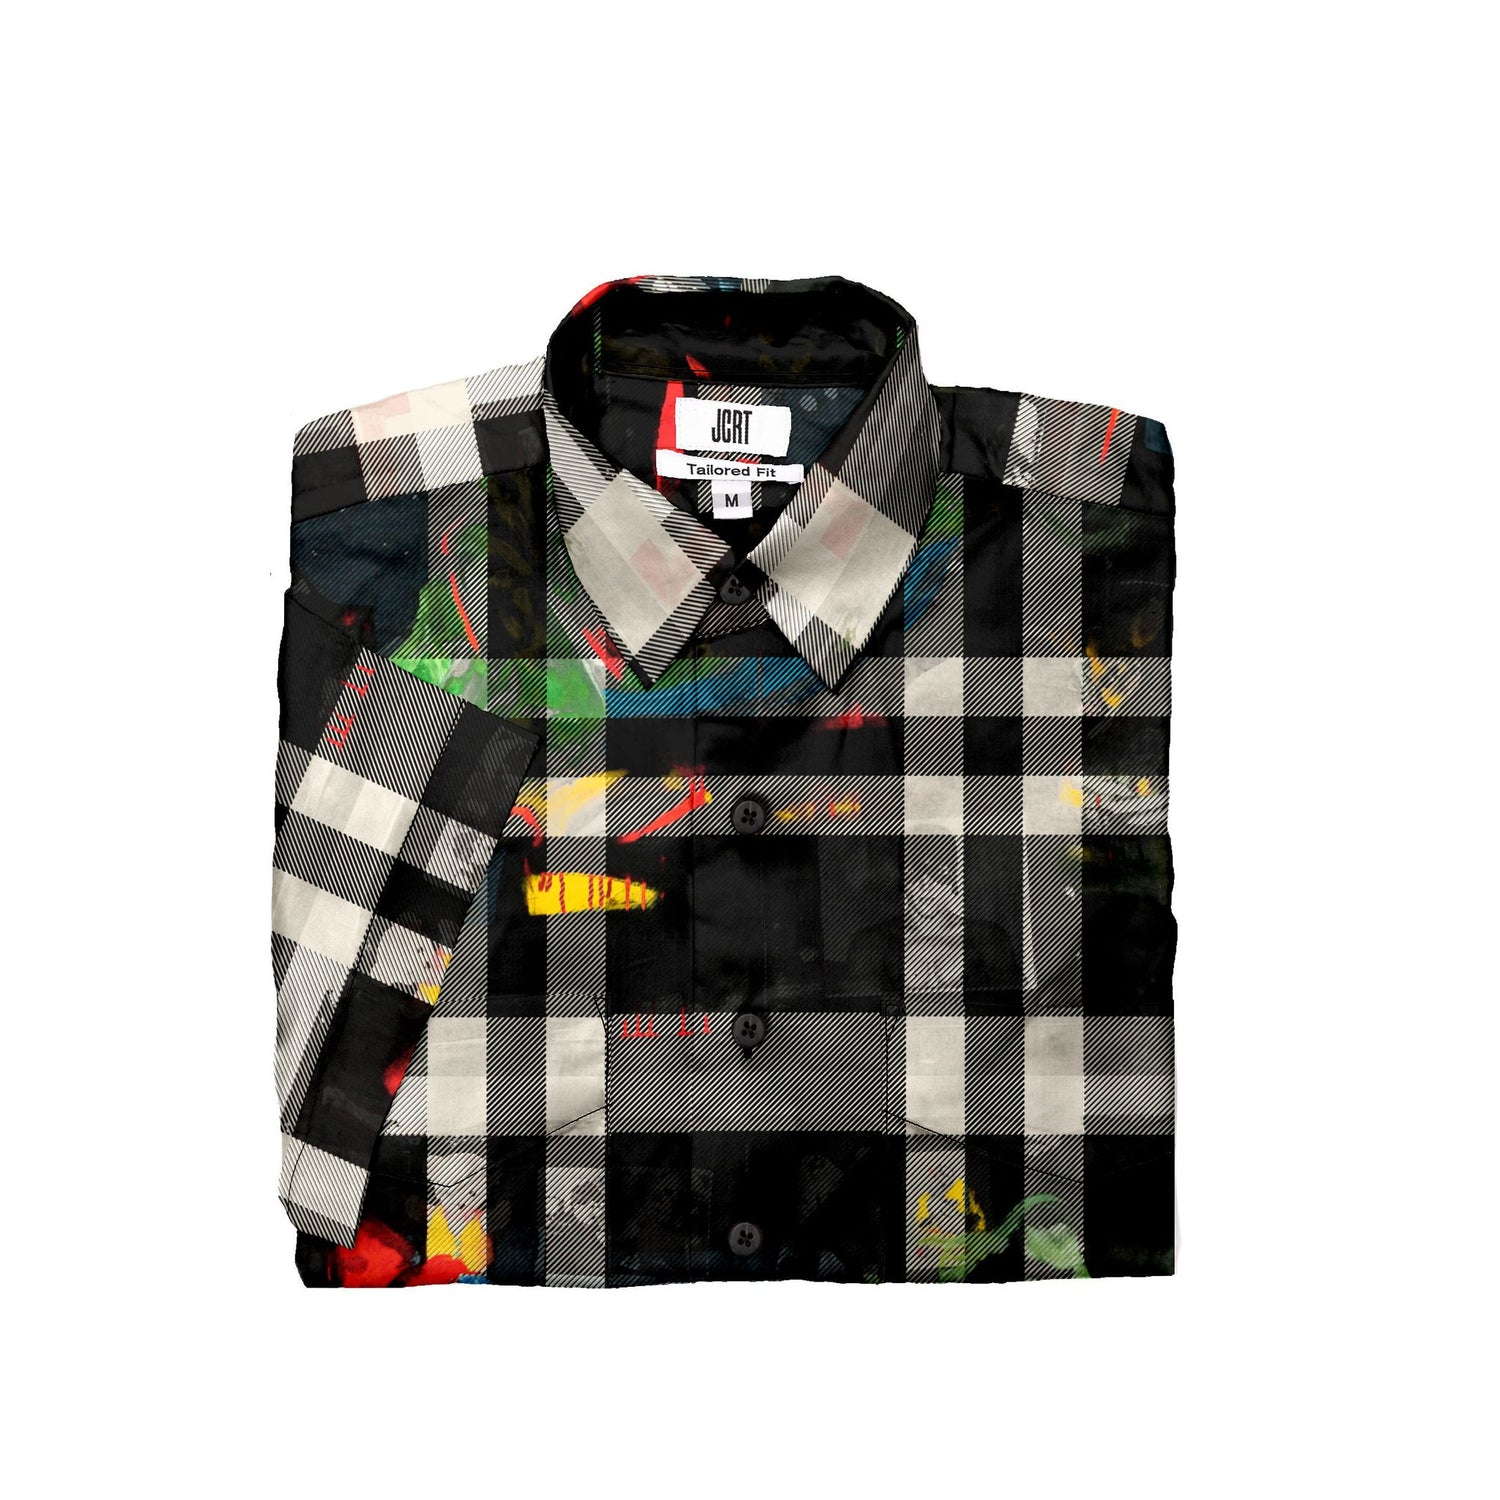 The Scooter Blue Smurf Plaid Short Sleeve Shirt